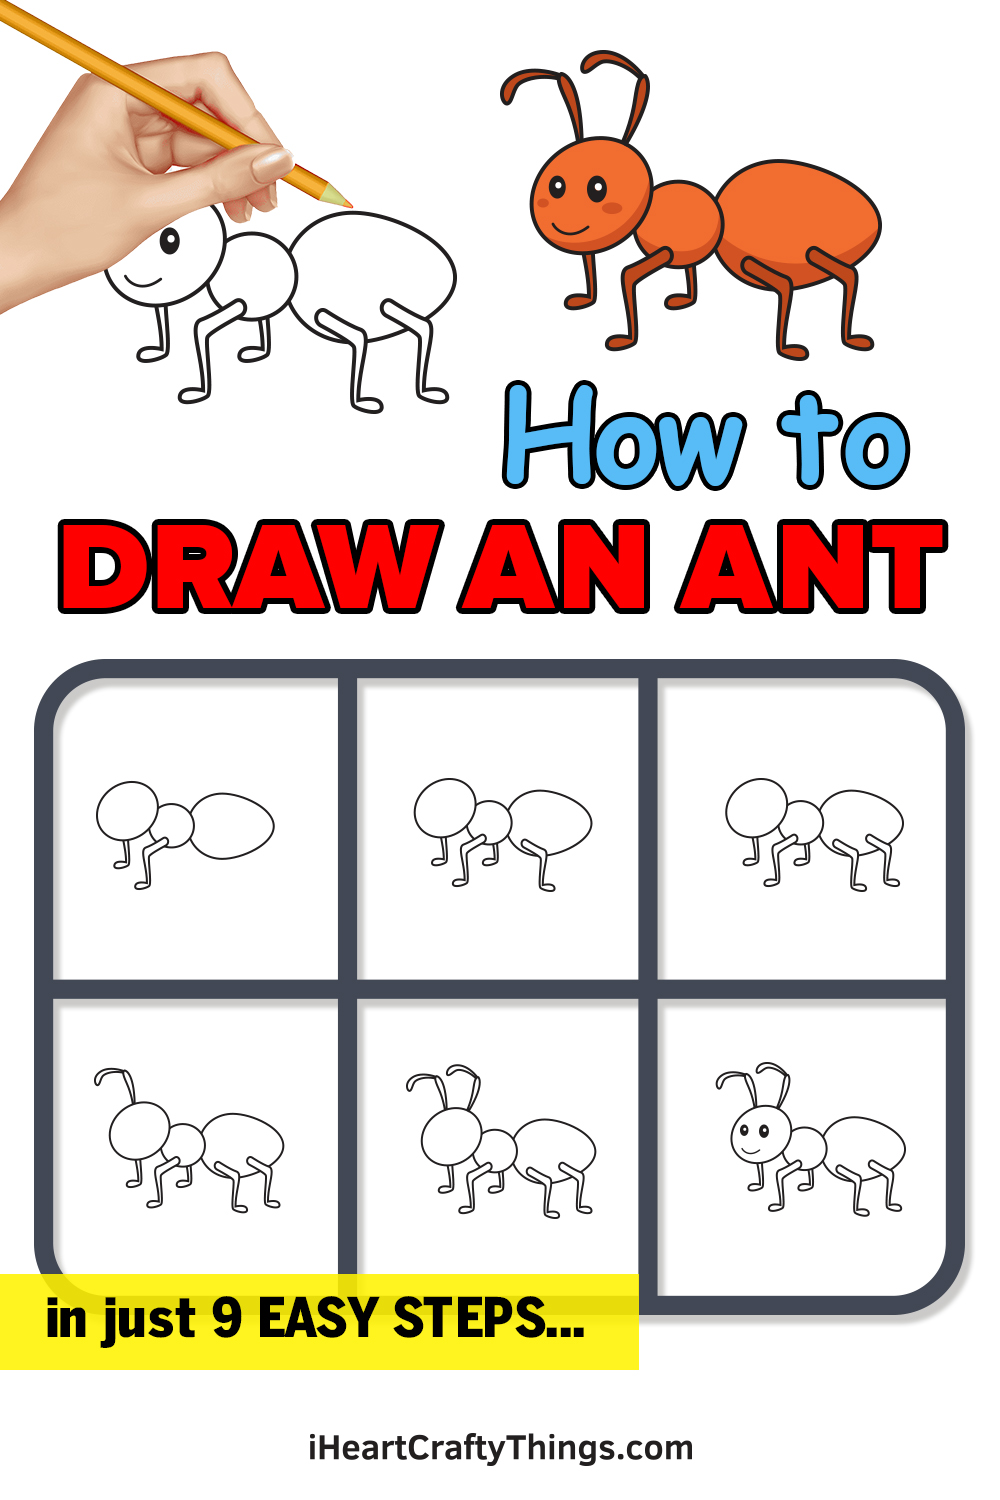 how to draw an ant in 9 easy steps